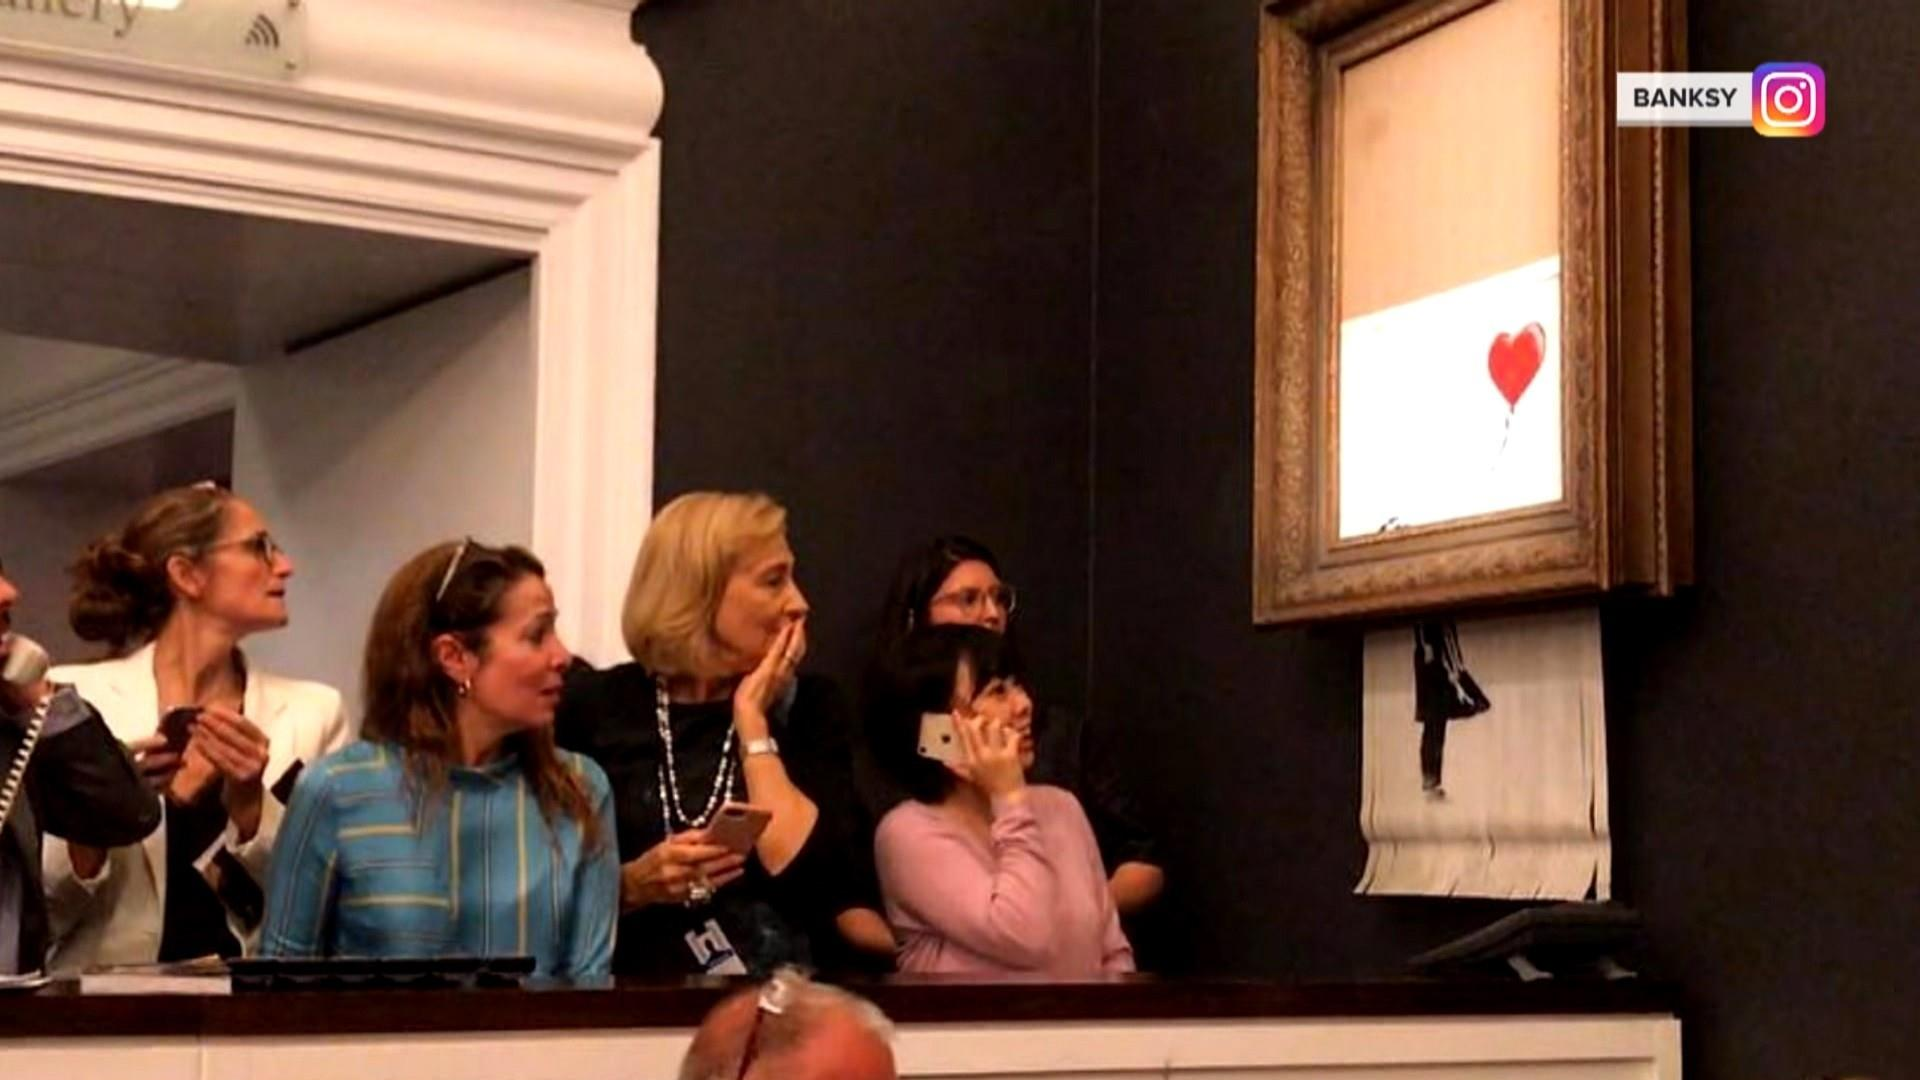 Banksy painting shreds itself moments after being sold for $1.4 million at London auction